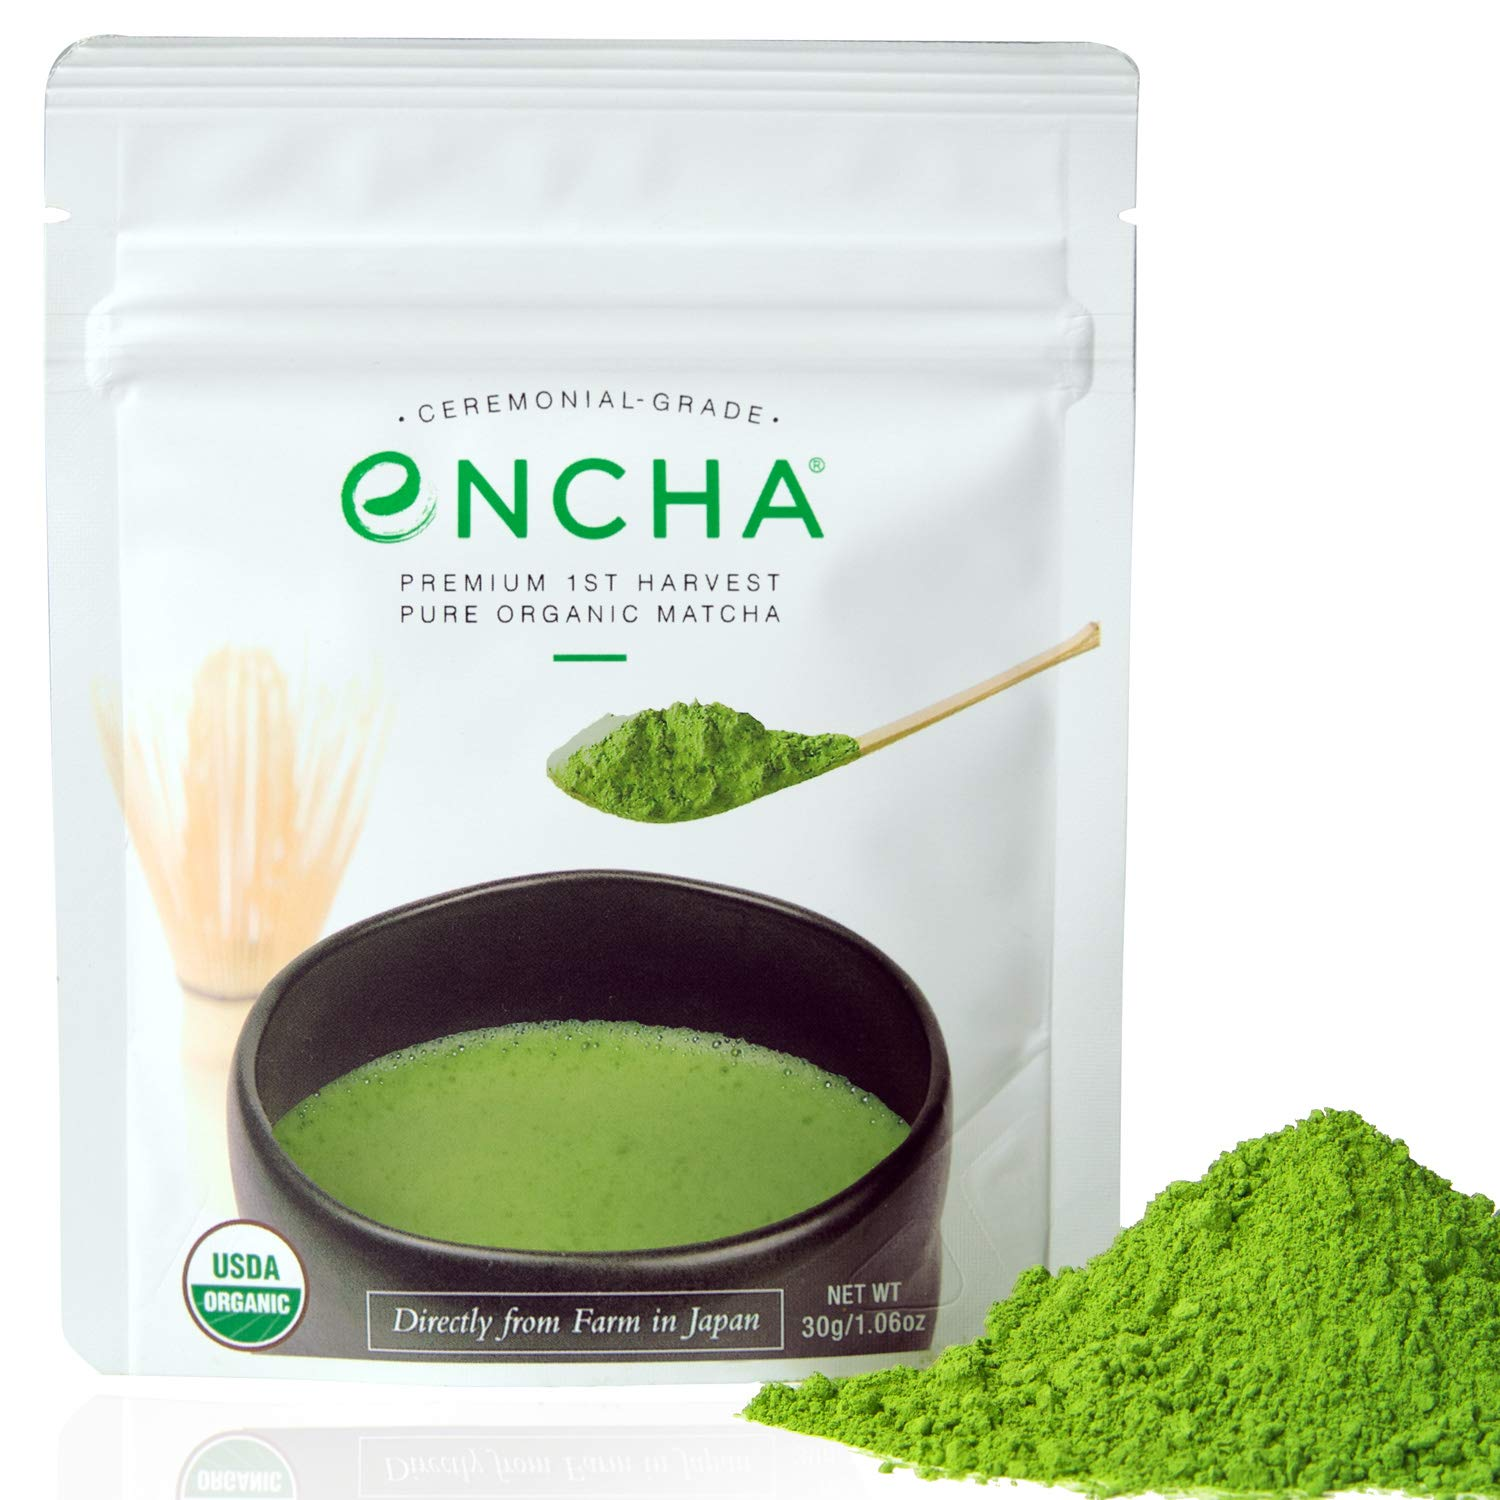 Encha Ceremonial Organic Matcha (USDA Organic Certificate and Antioxidant Content Listed, Premium First Harvest Directly from Farm in Uji, Japan